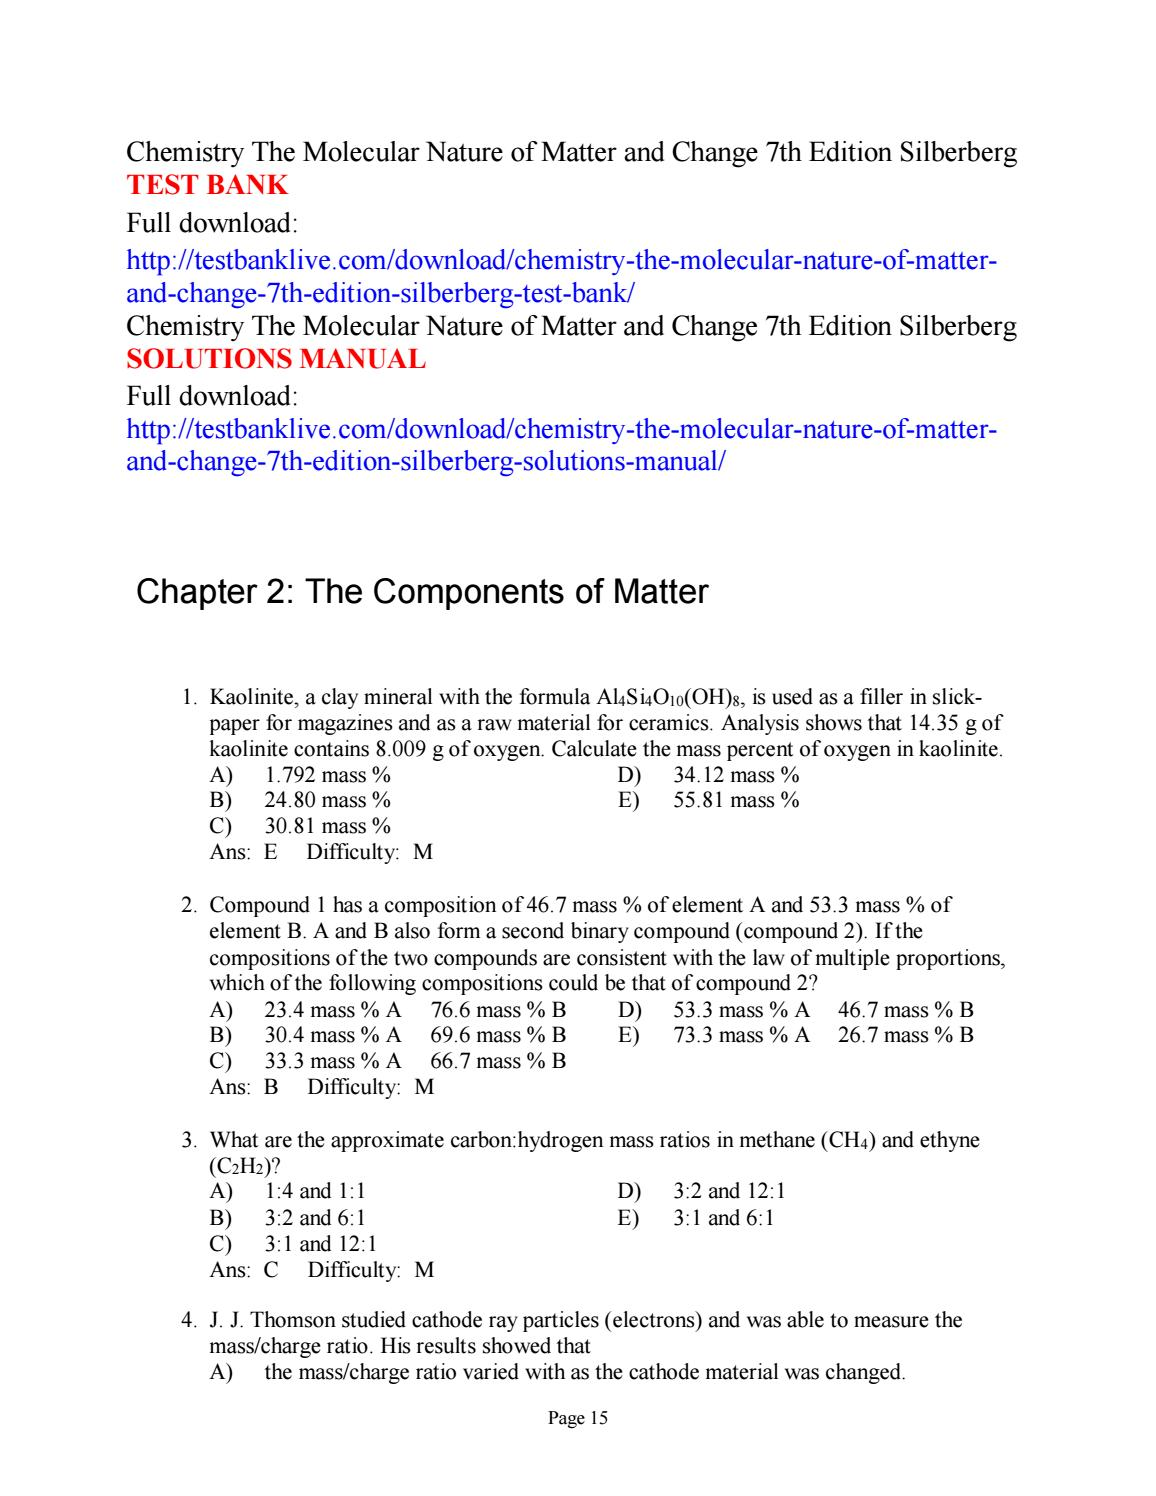 Chemistry the molecular nature of matter and change 7th edition silberberg  test bank by alice112 - issuu